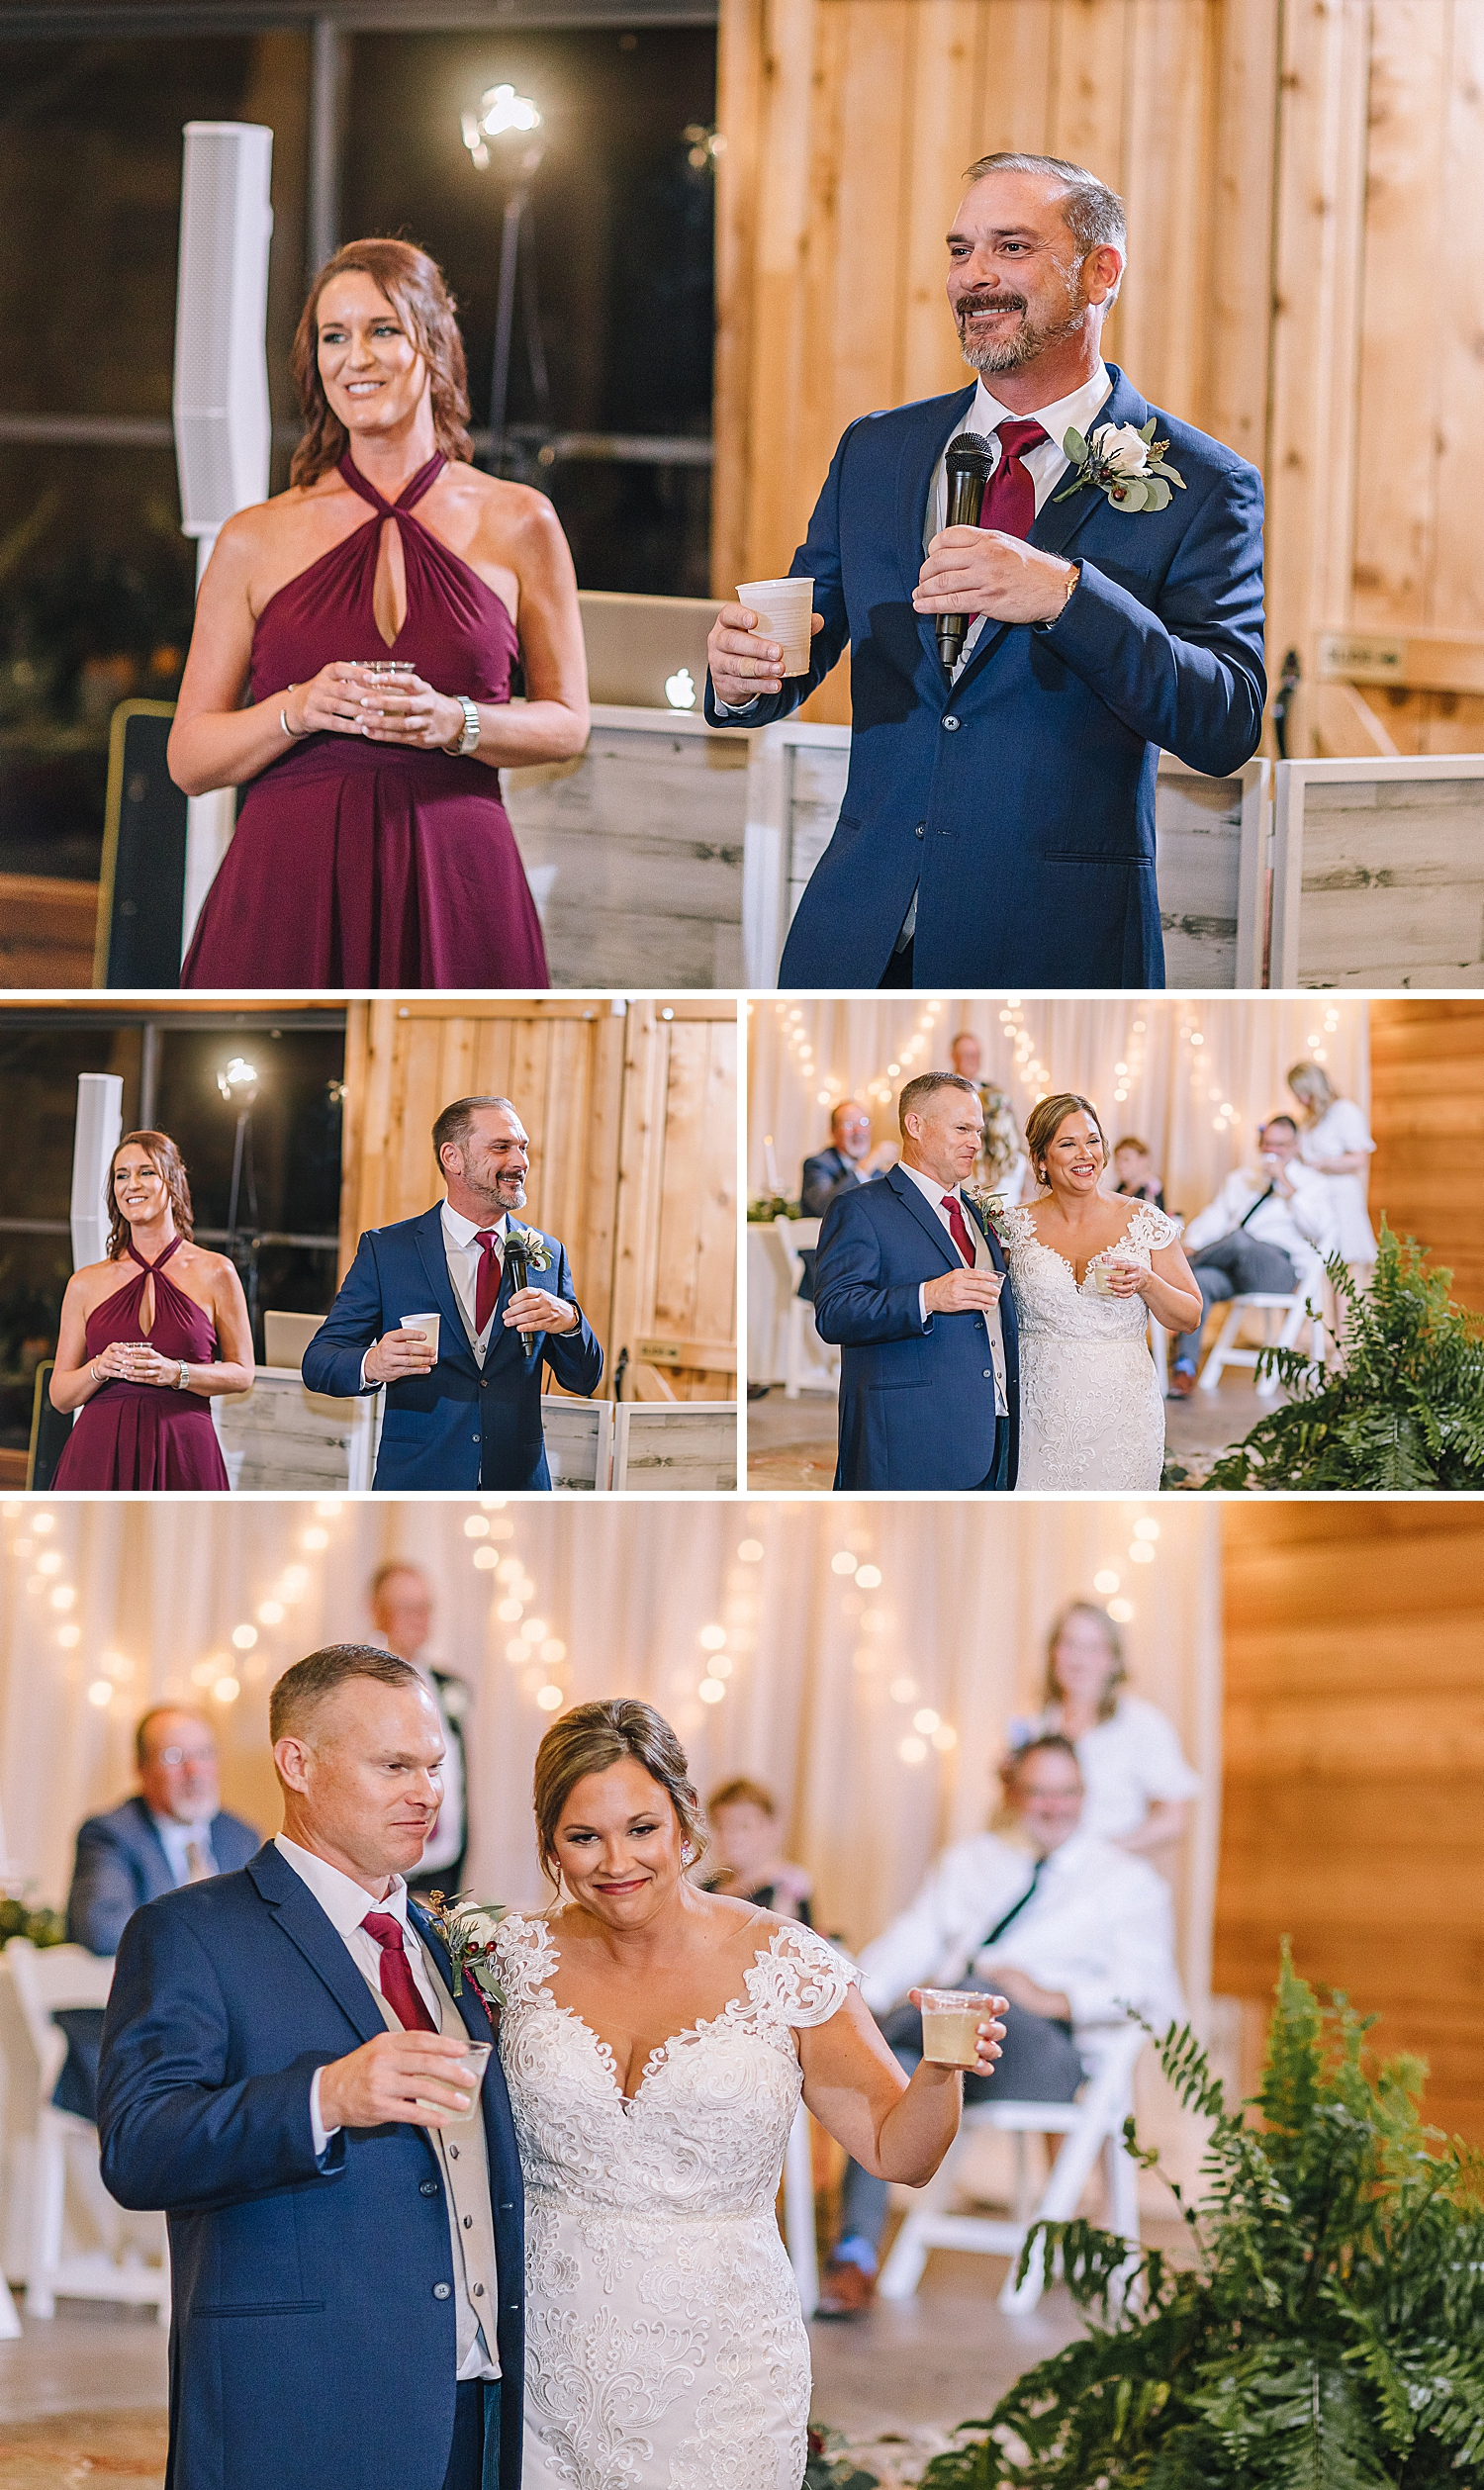 Geronimo-Oaks-Wedding-Venue-Seguin-Texas-Elegant-Navy-Burgundy-Wedding-Carly-Barton-Photography_0074.jpg